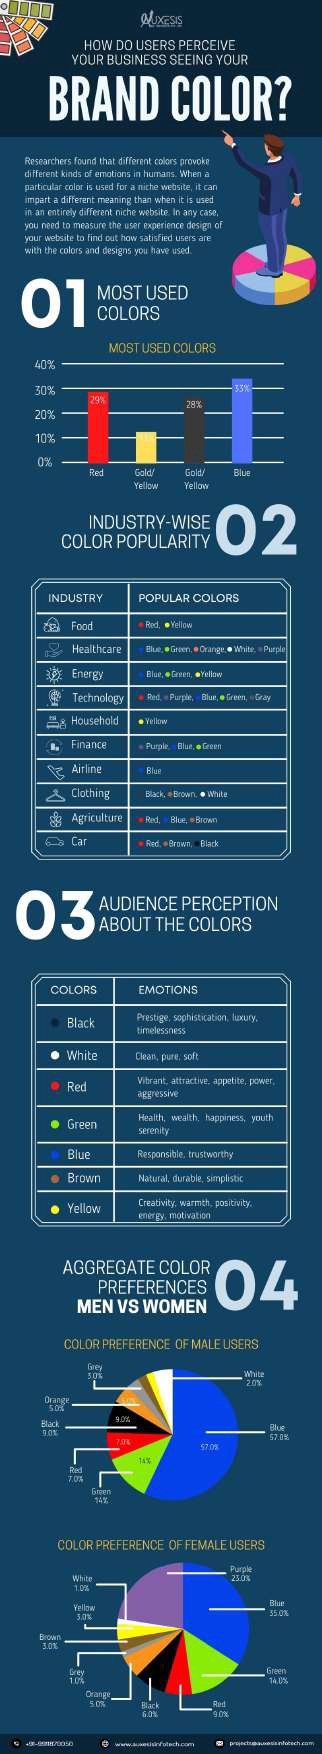 business brand colors infographic